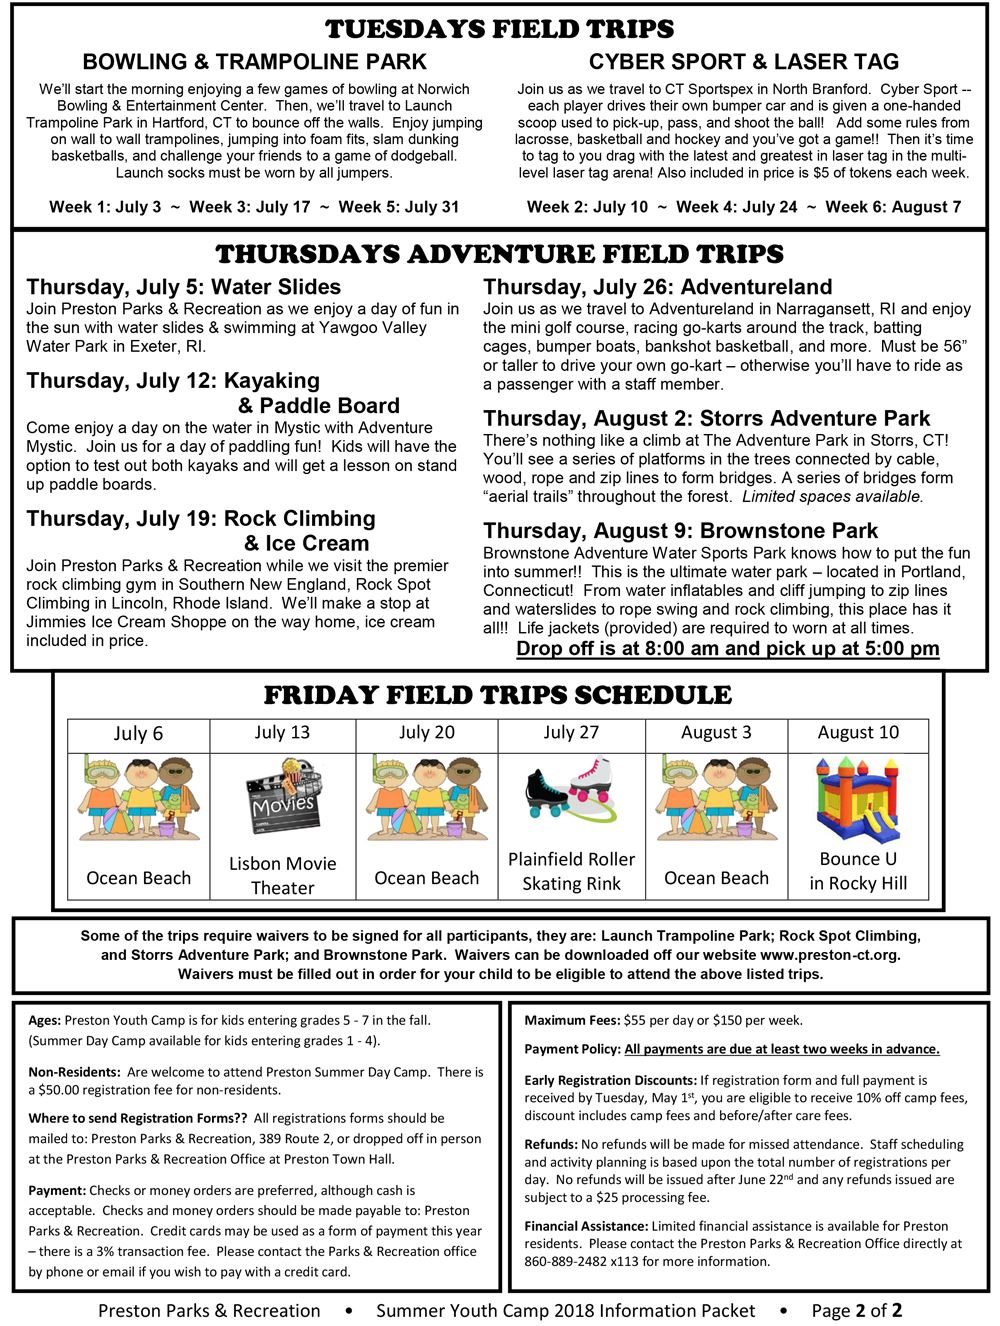 SummerYouthCampFlyer2018-2